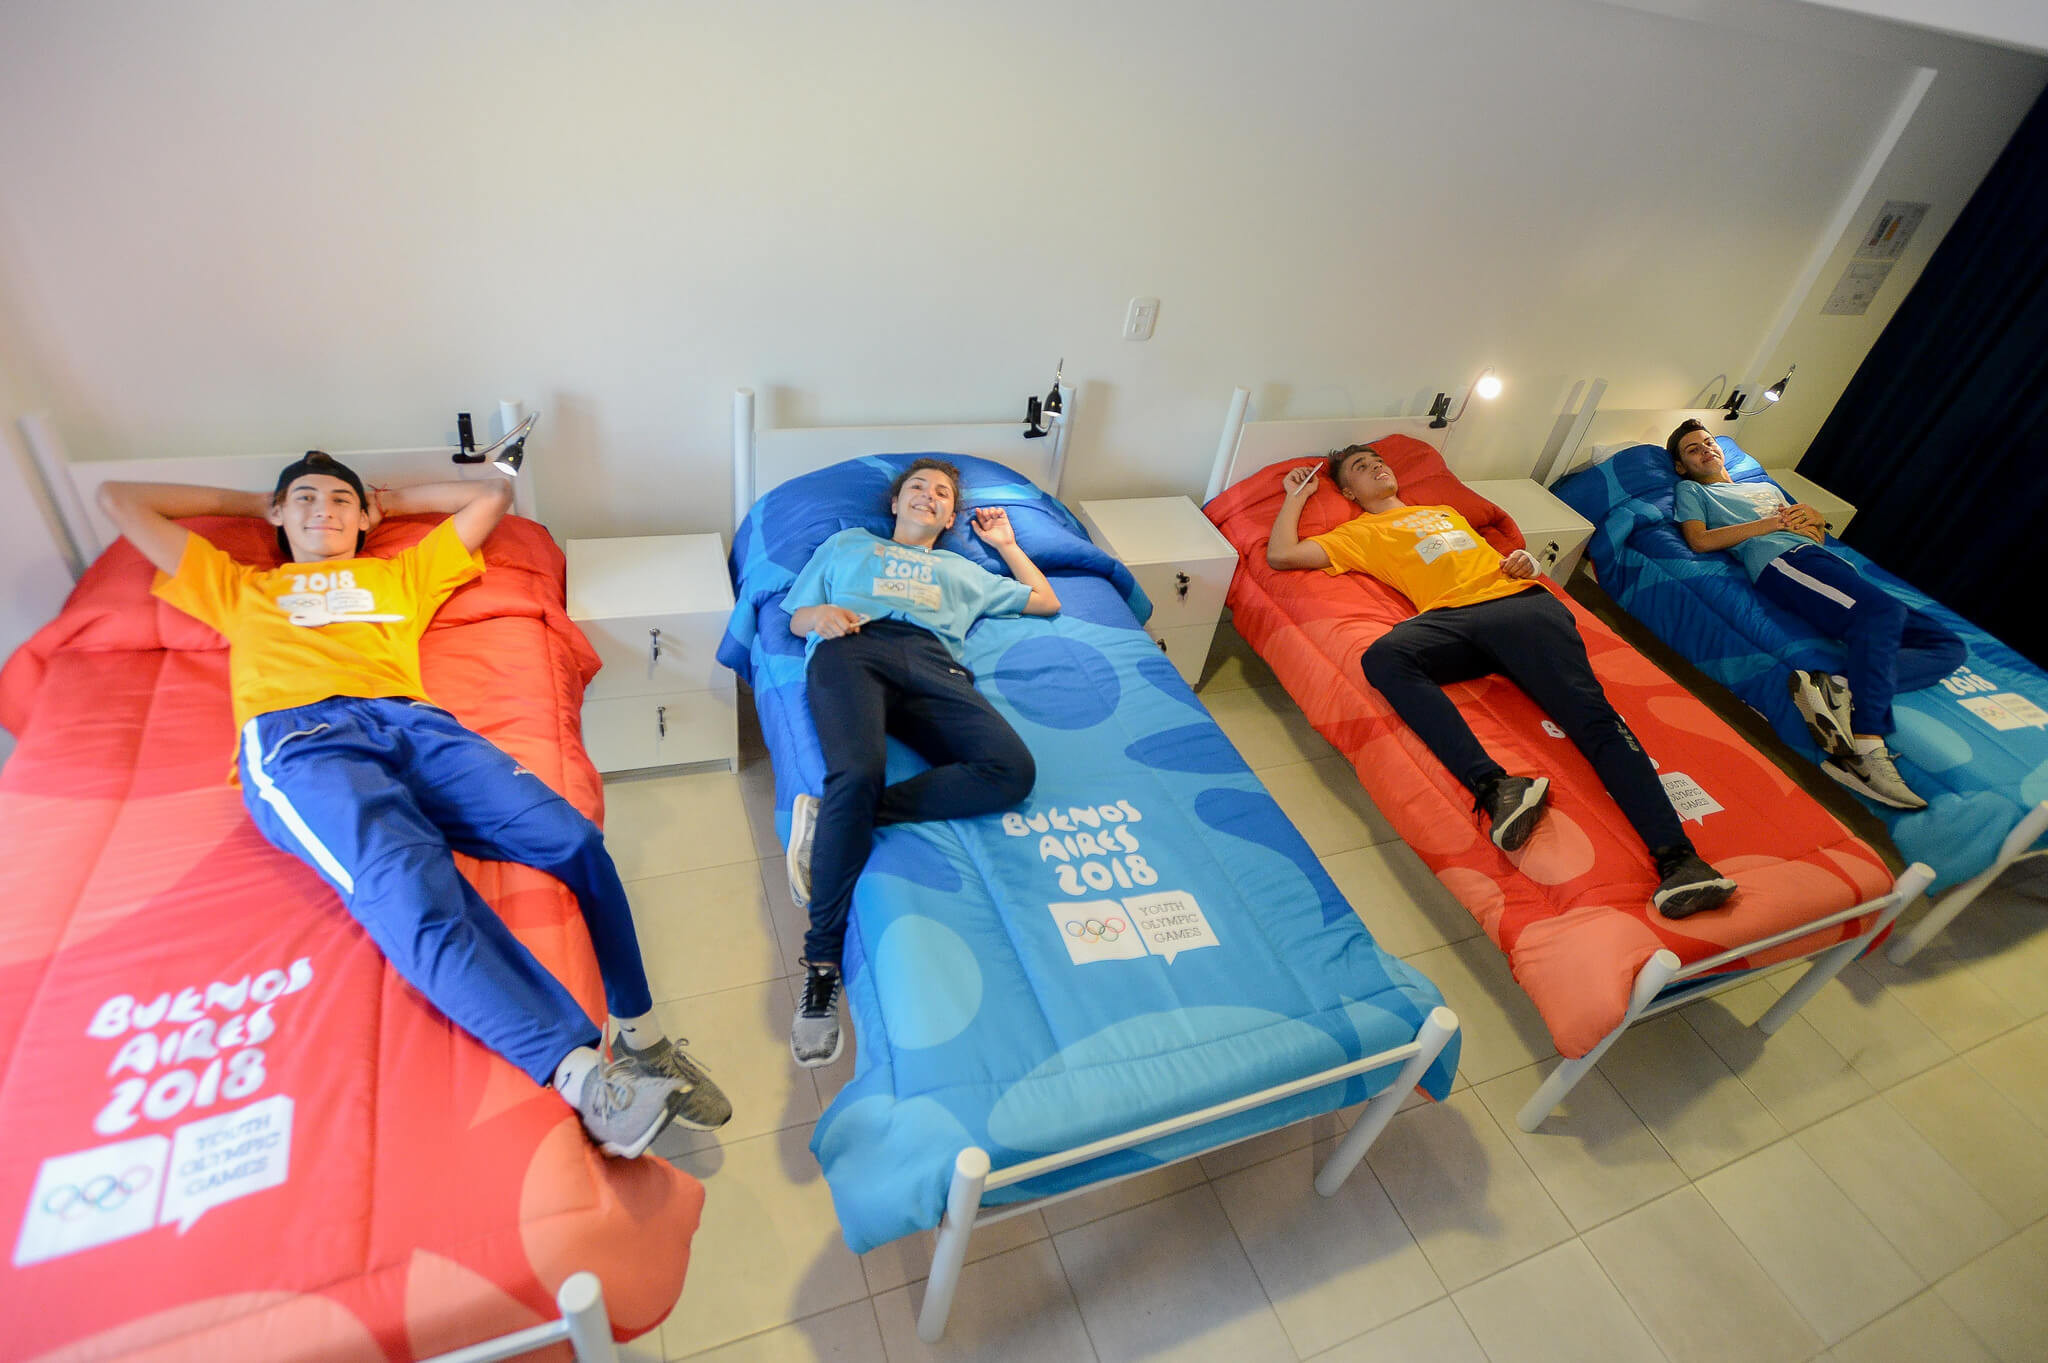 Aspiring athletes test out beds in the Village ©Buenos Aires 2018